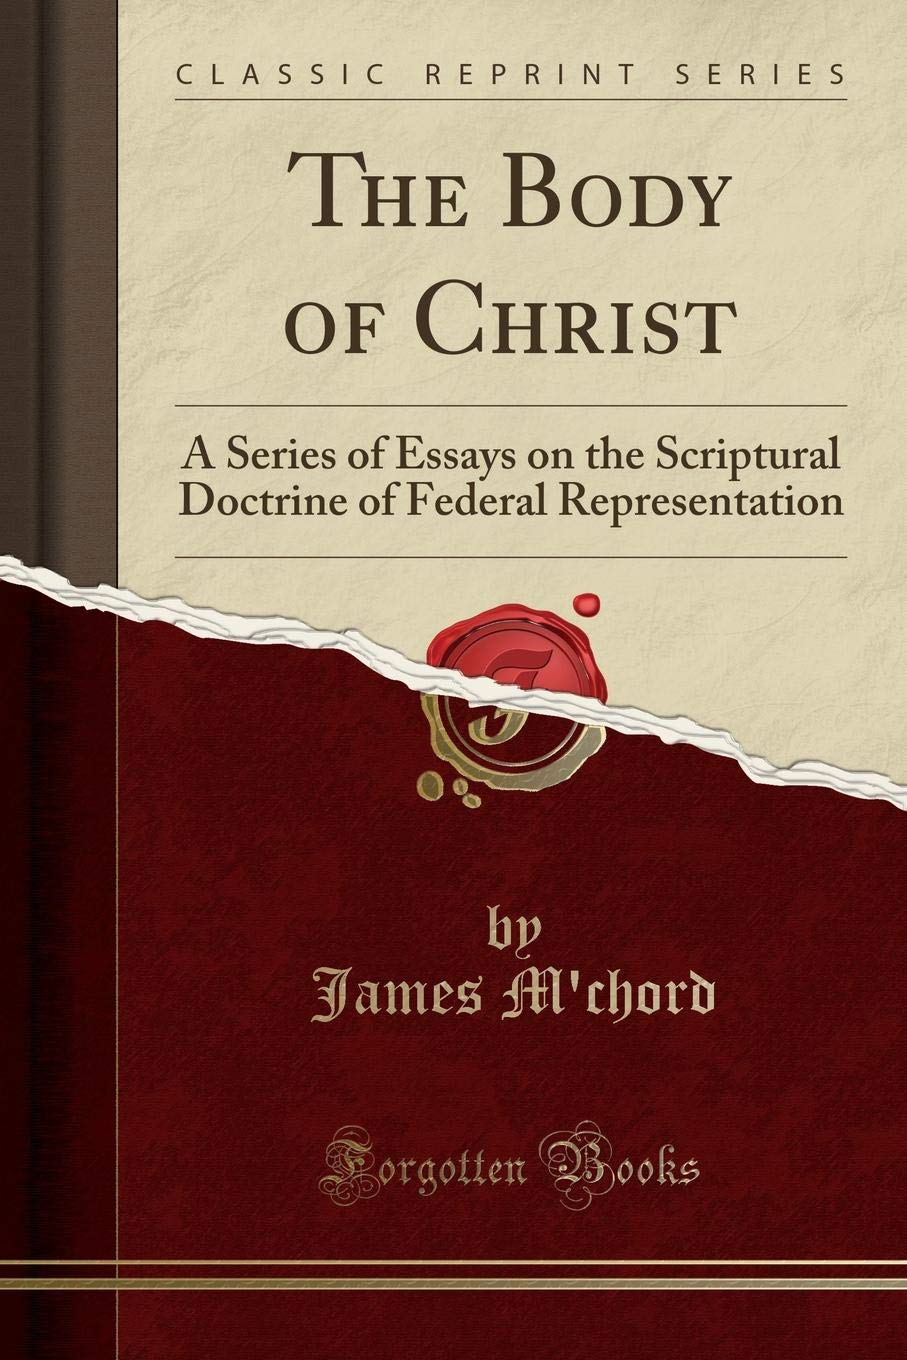 The Body of Christ: A Series of Essays on the Scriptural Doctrine of Federal Representation (Classic Reprint) PDF